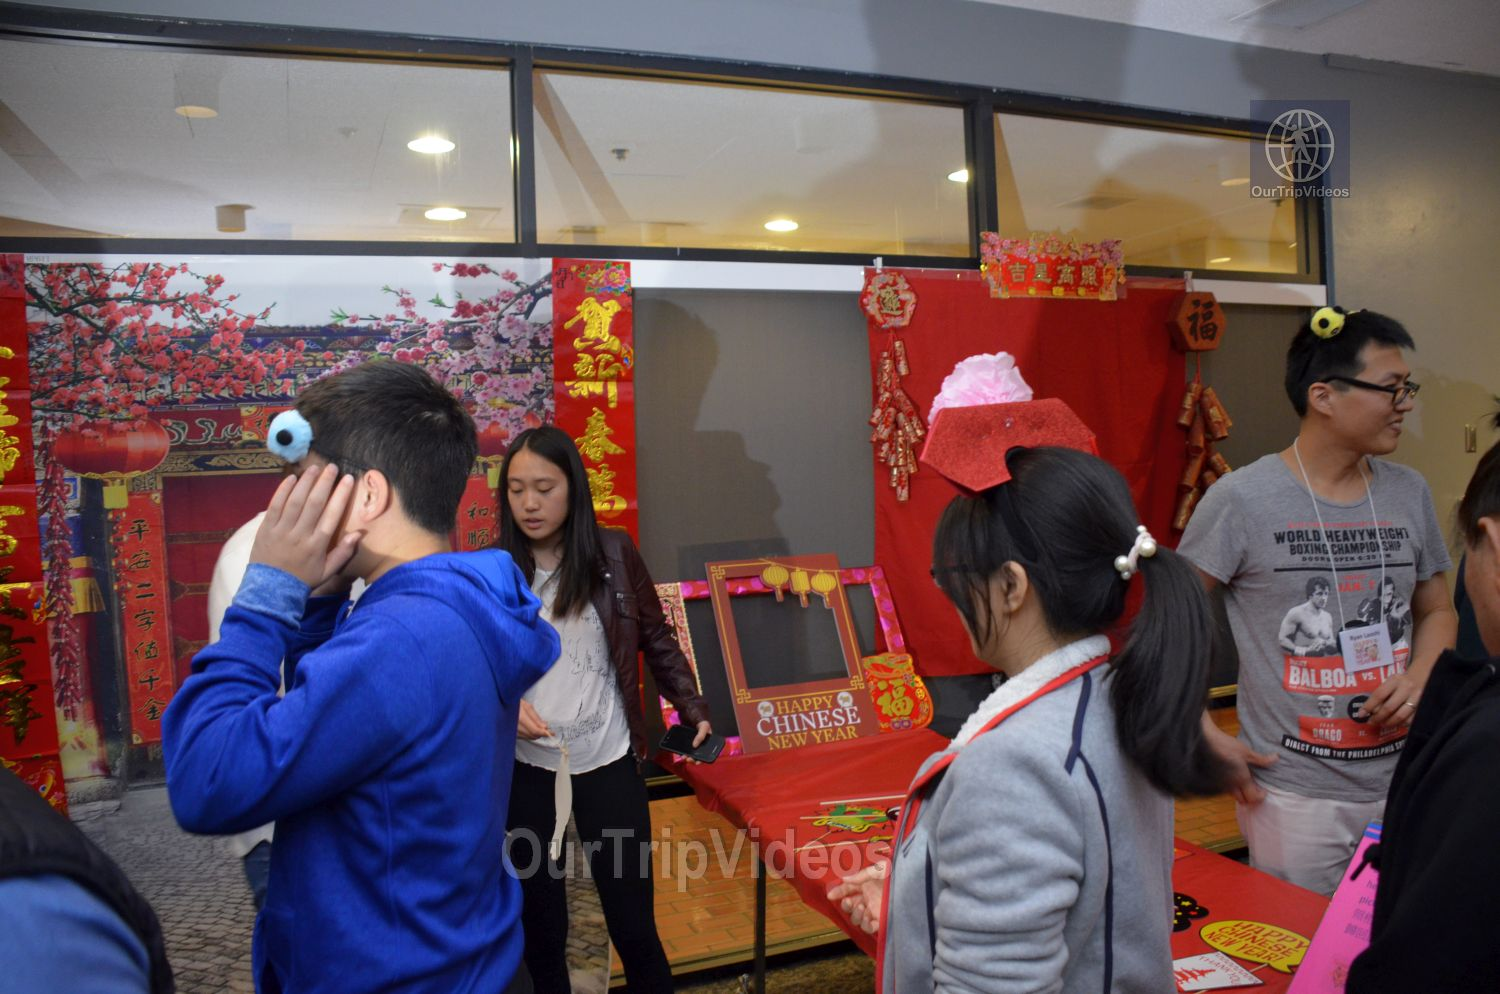 Chinese Lunar New Year Celebration, Milpitas, CA, USA - Picture 2 of 25